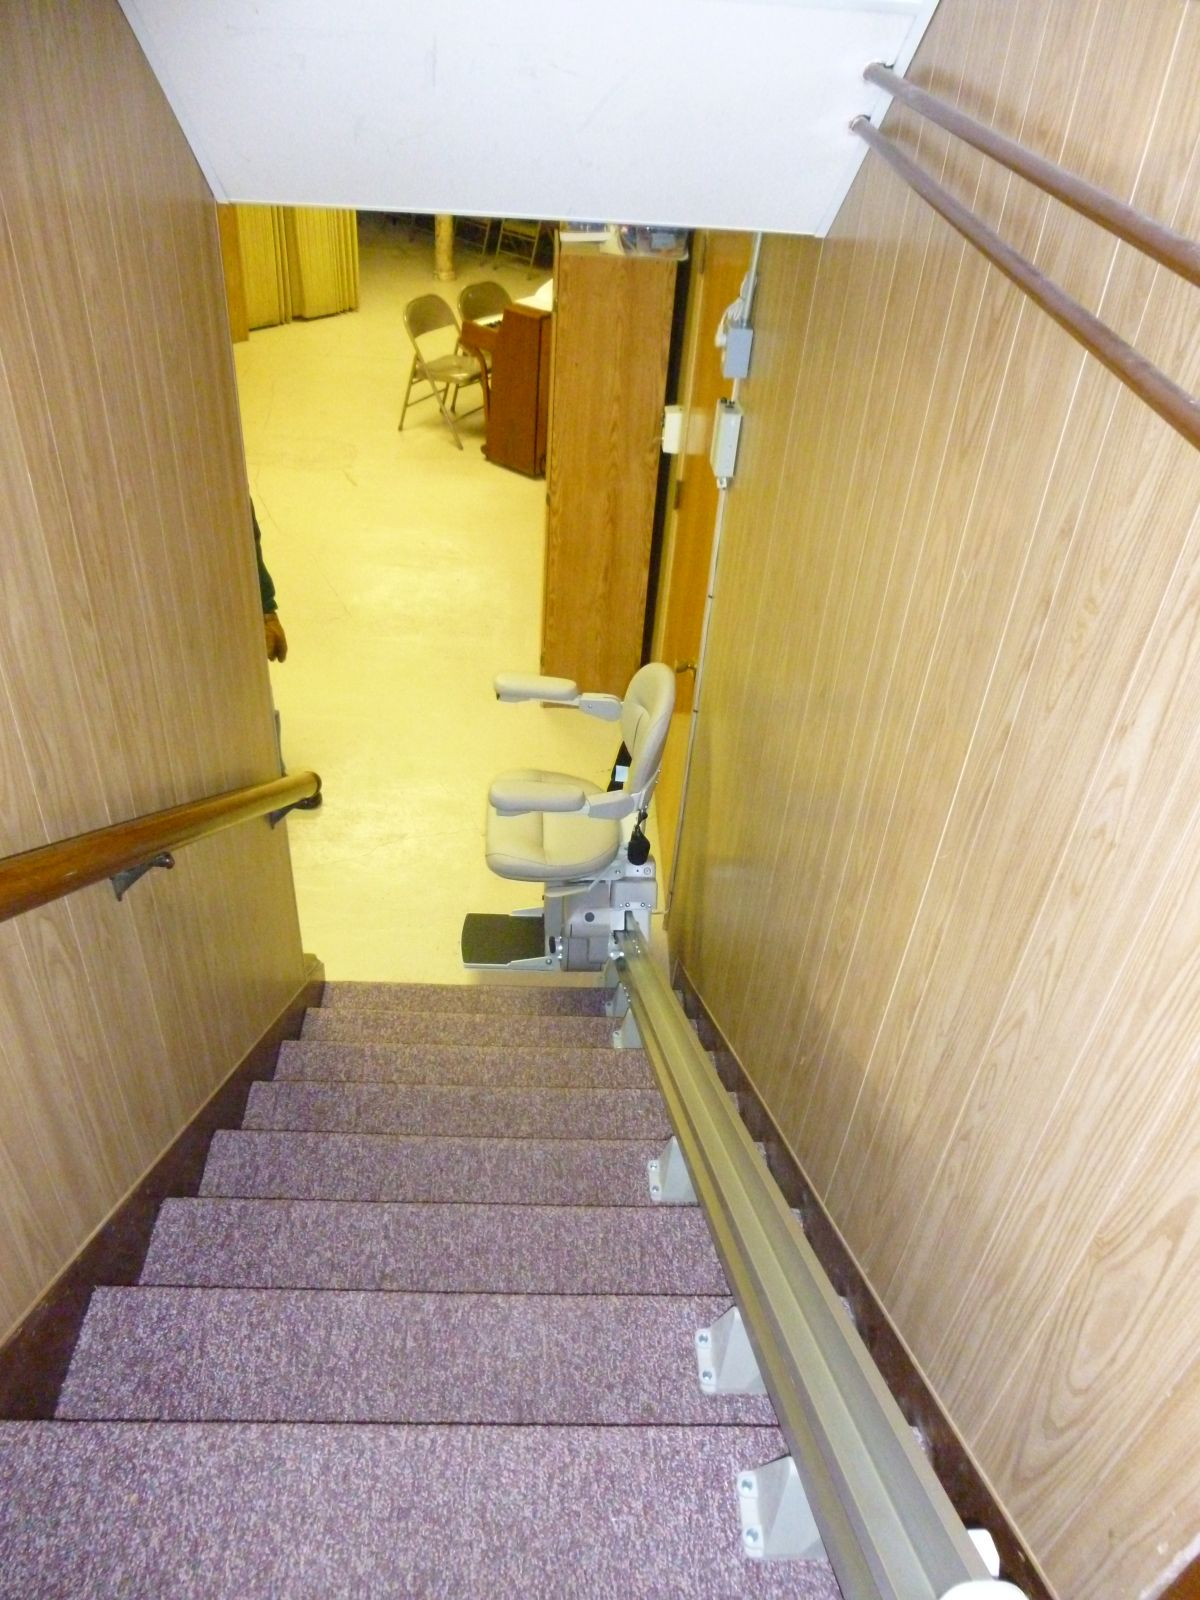 New stair lift going to basement. (Feb 2015)